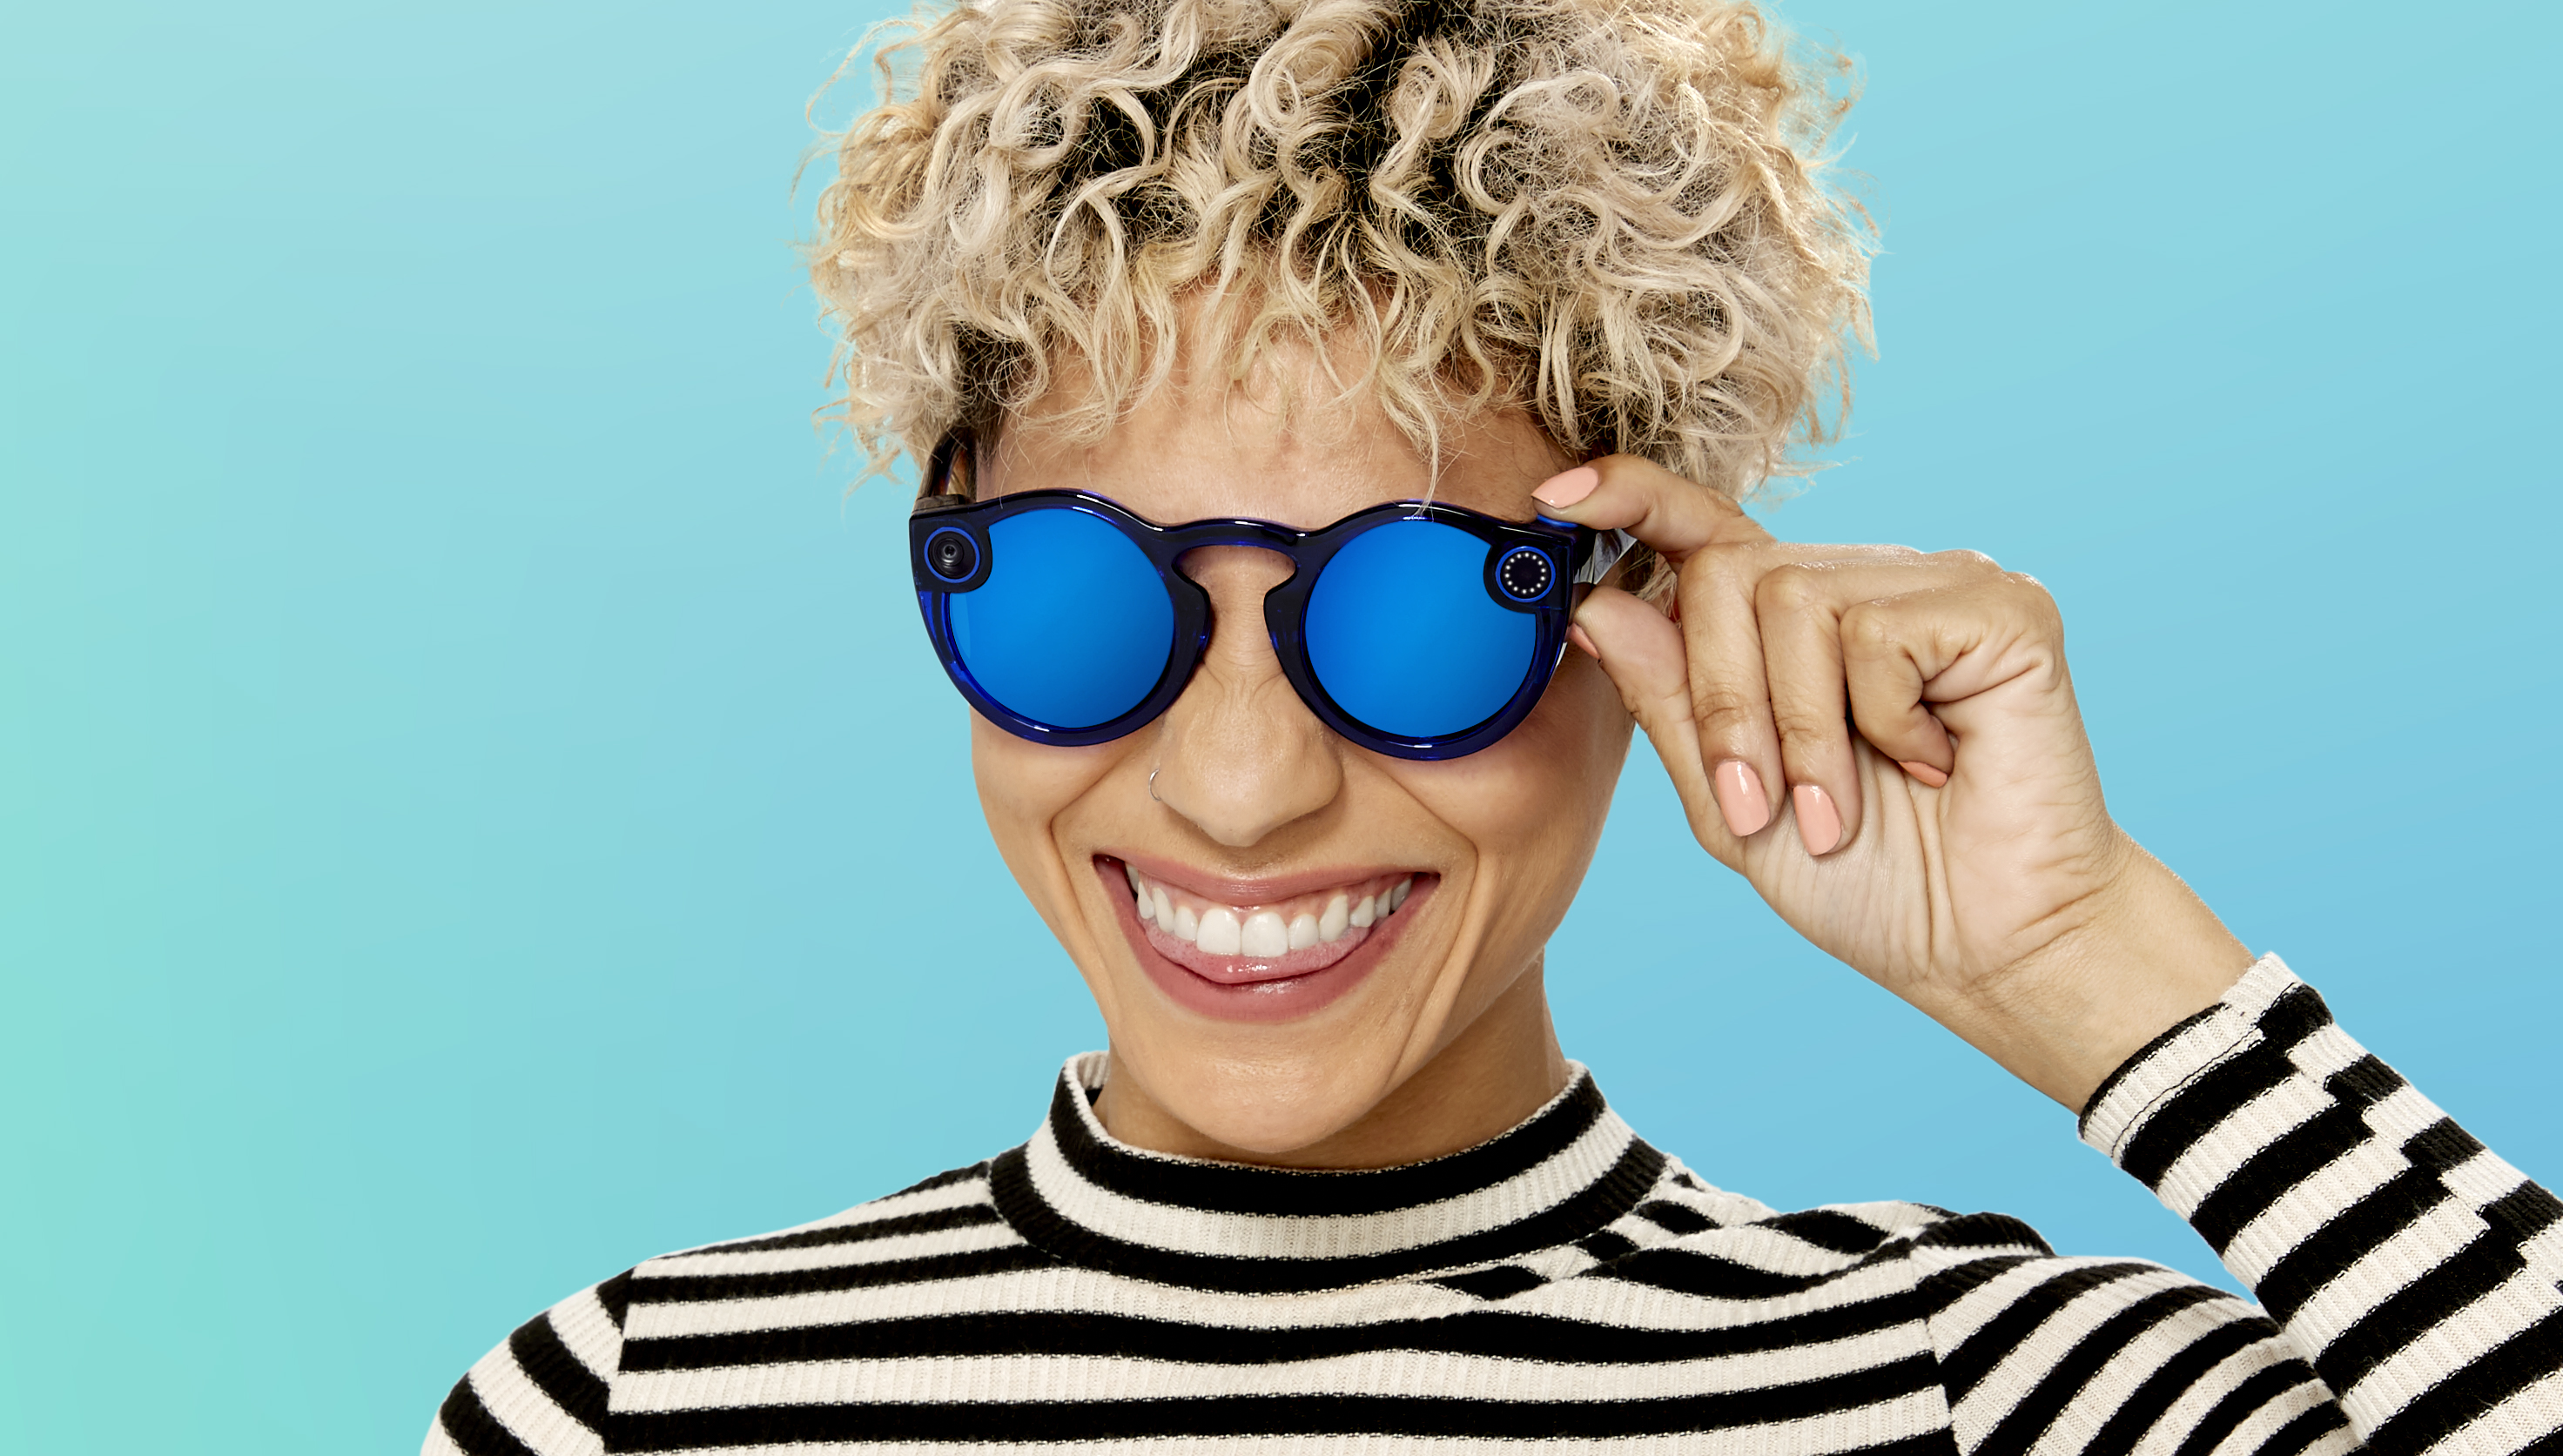 Snap's new Snapchat Spectacles